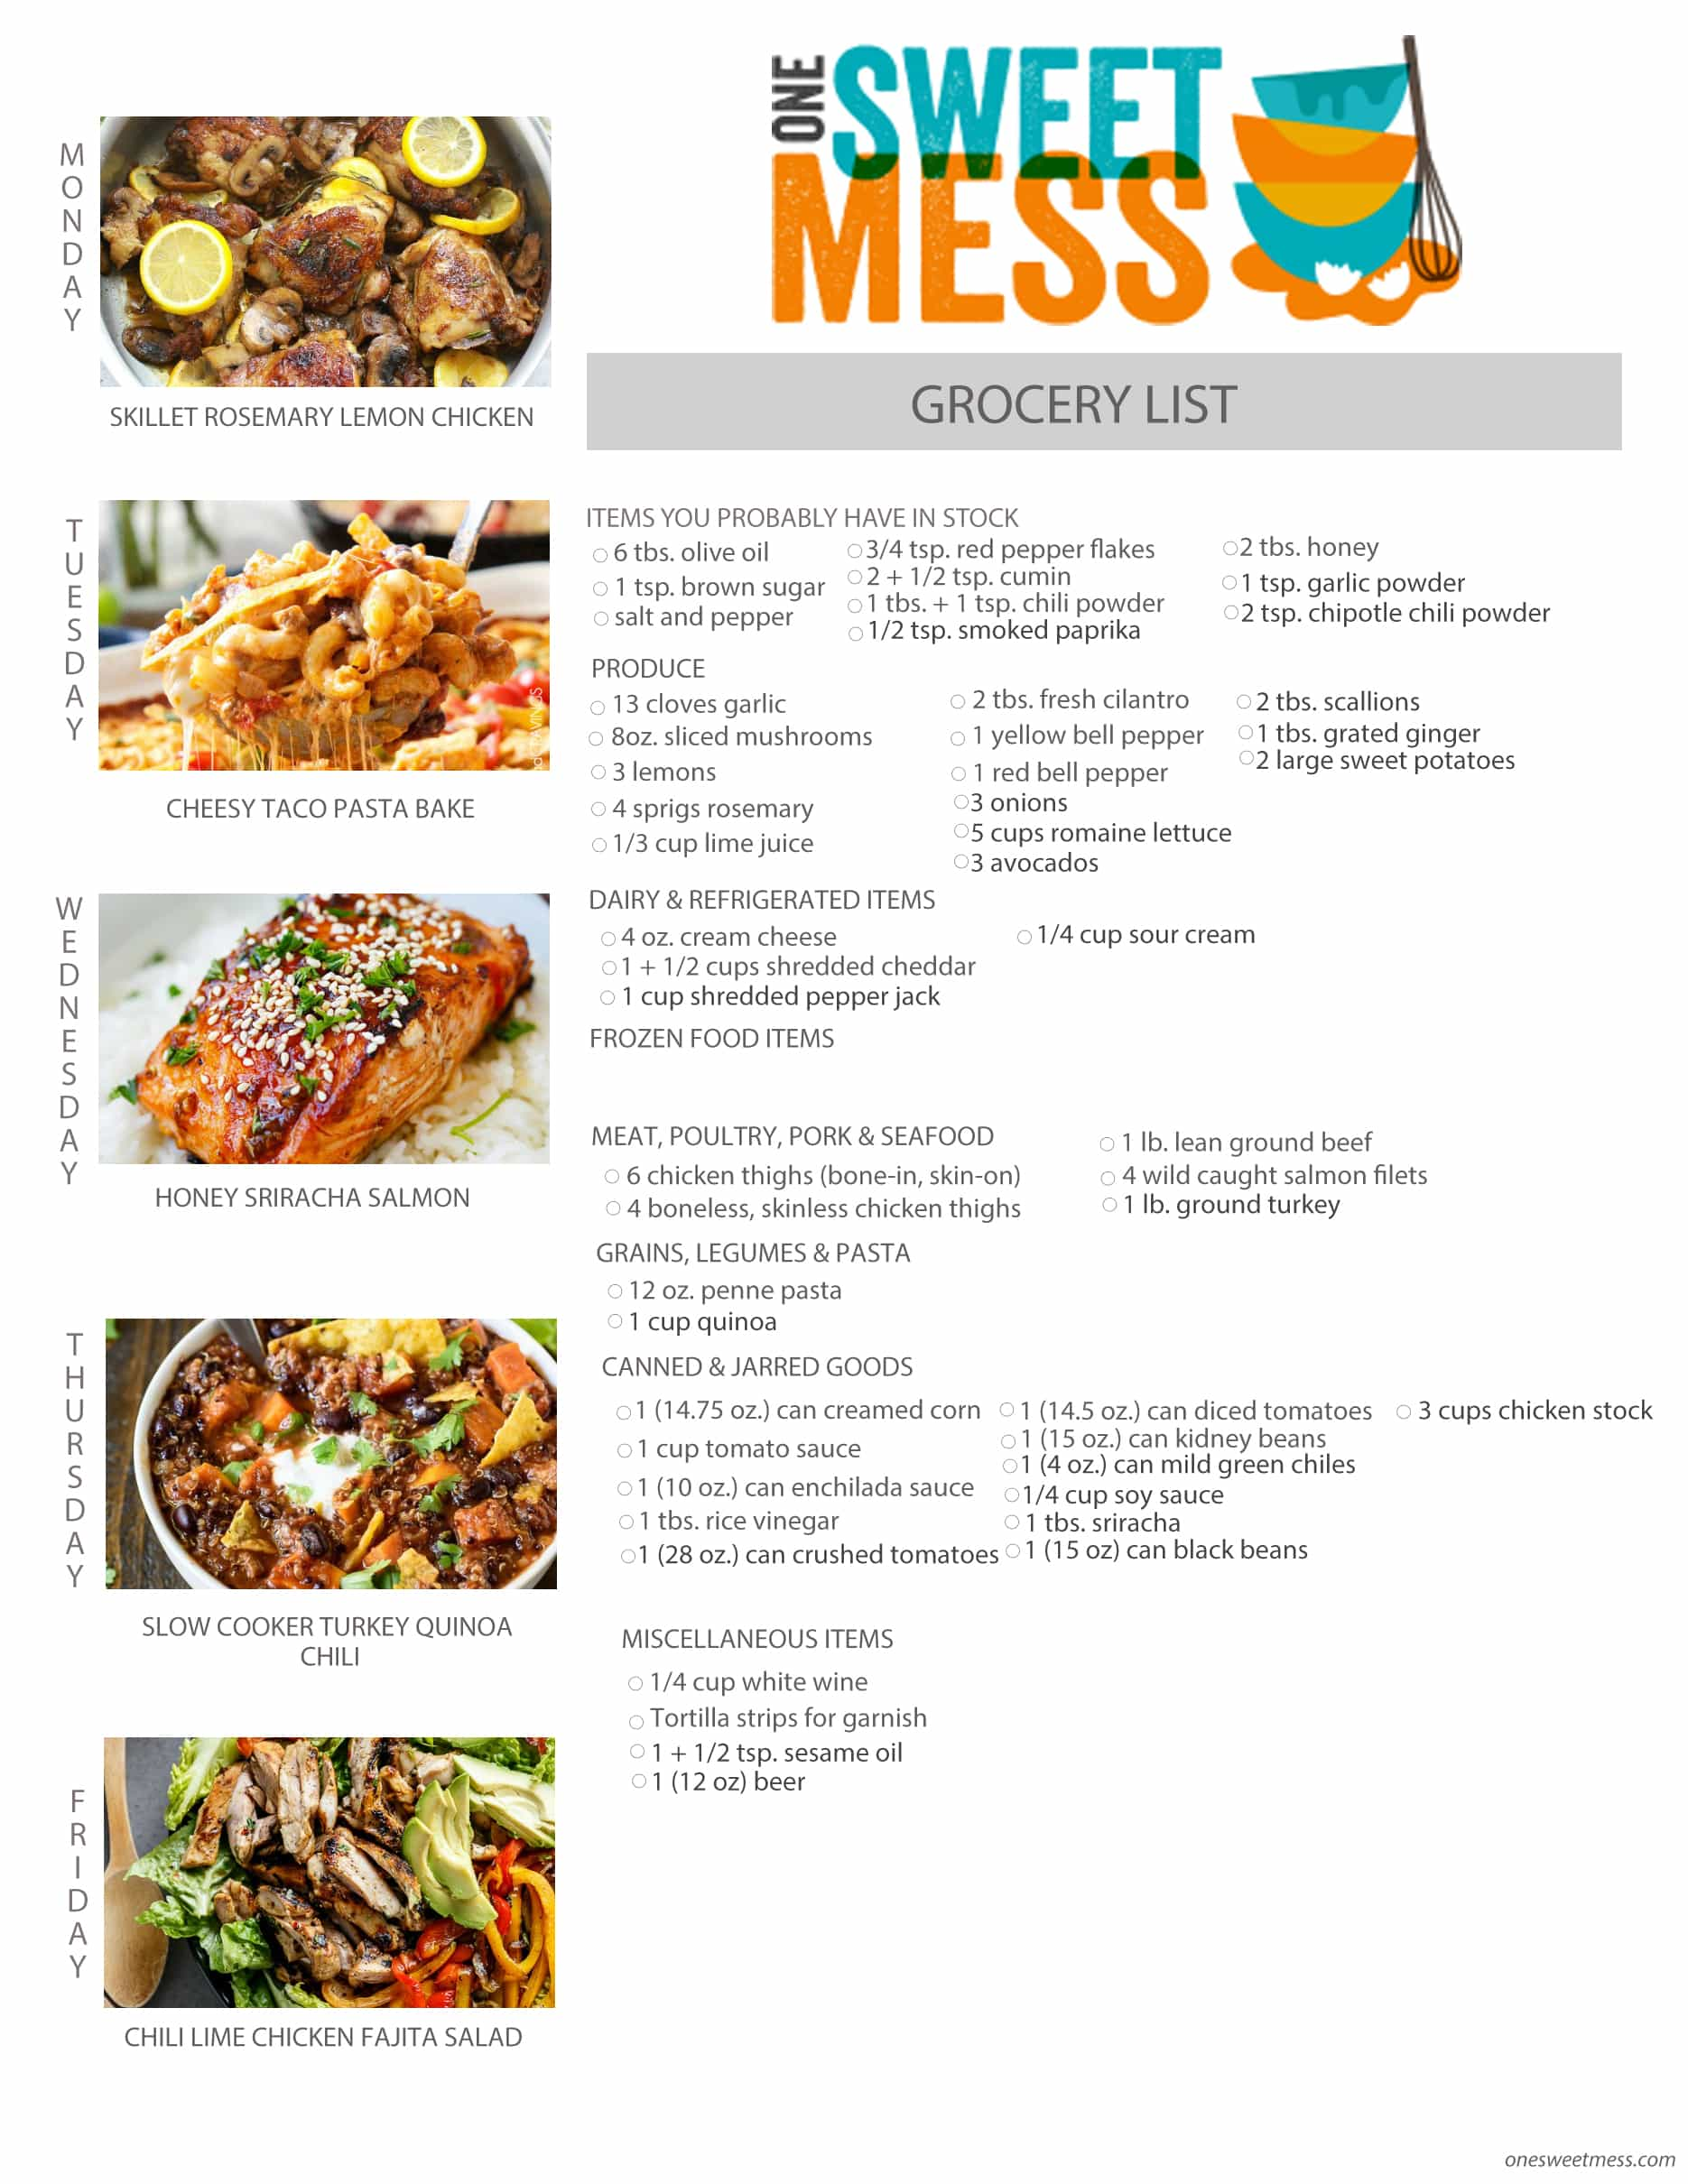 Week of March 7th, 2016 Weekly Meal Plan + Printable Grocery List